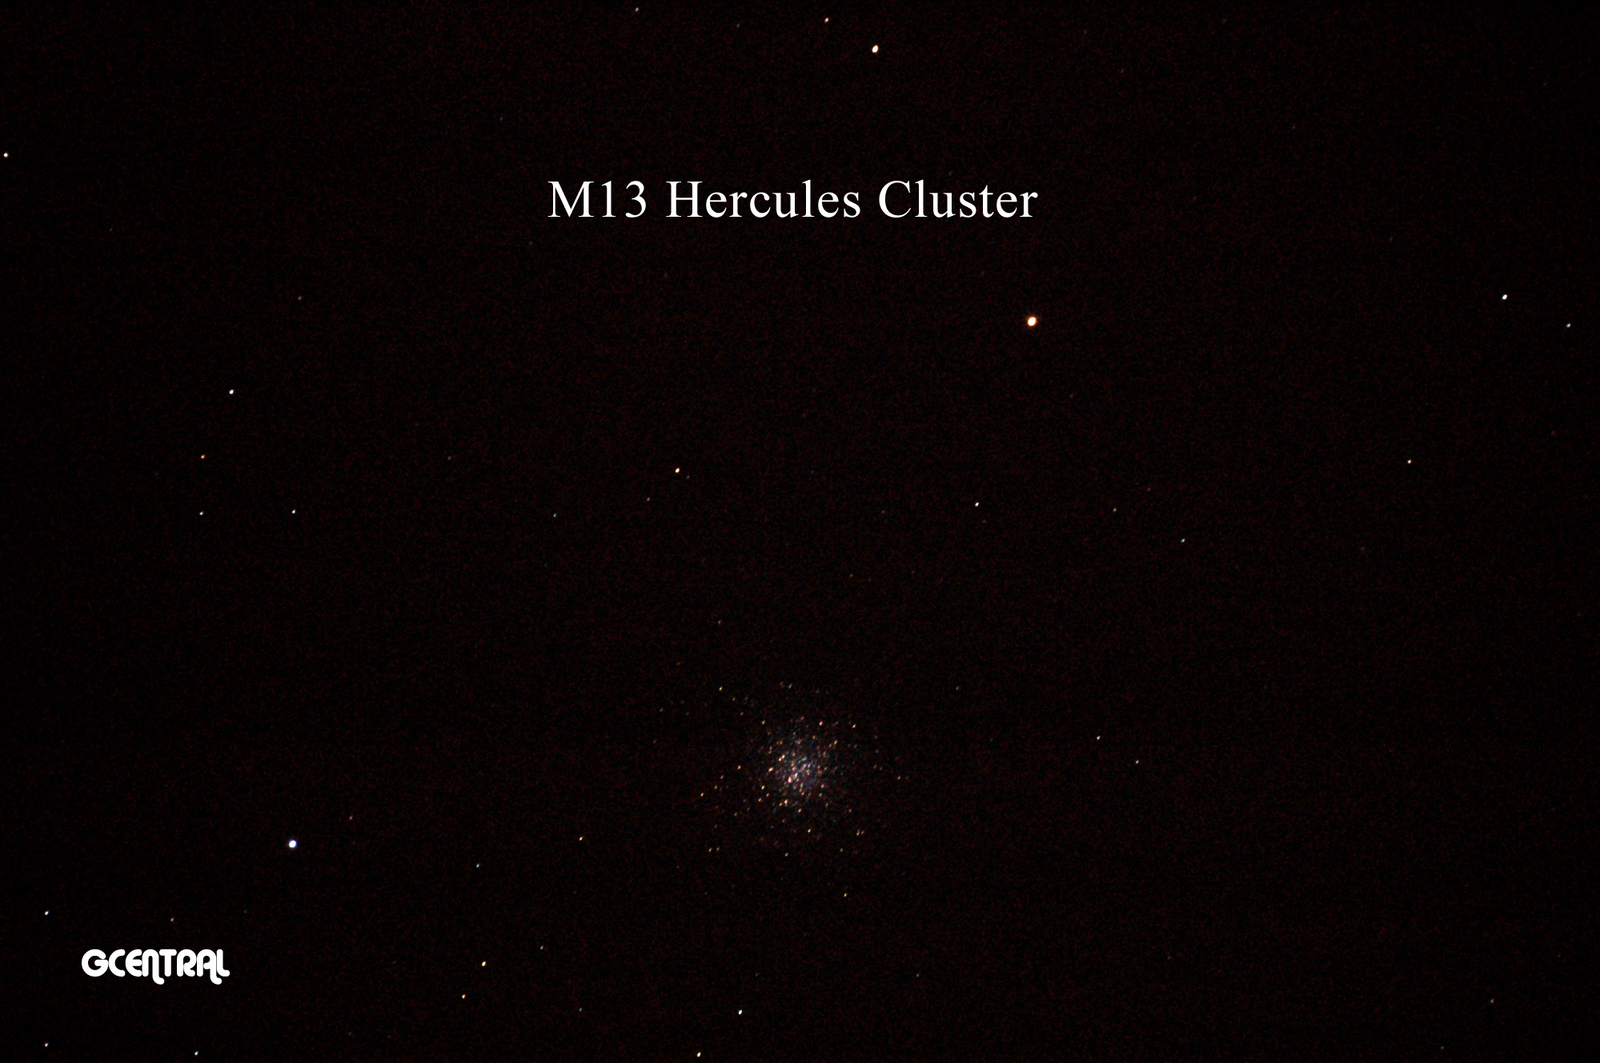 Hercules Cluster August 12, 2015 (single exposure, zoom lens)